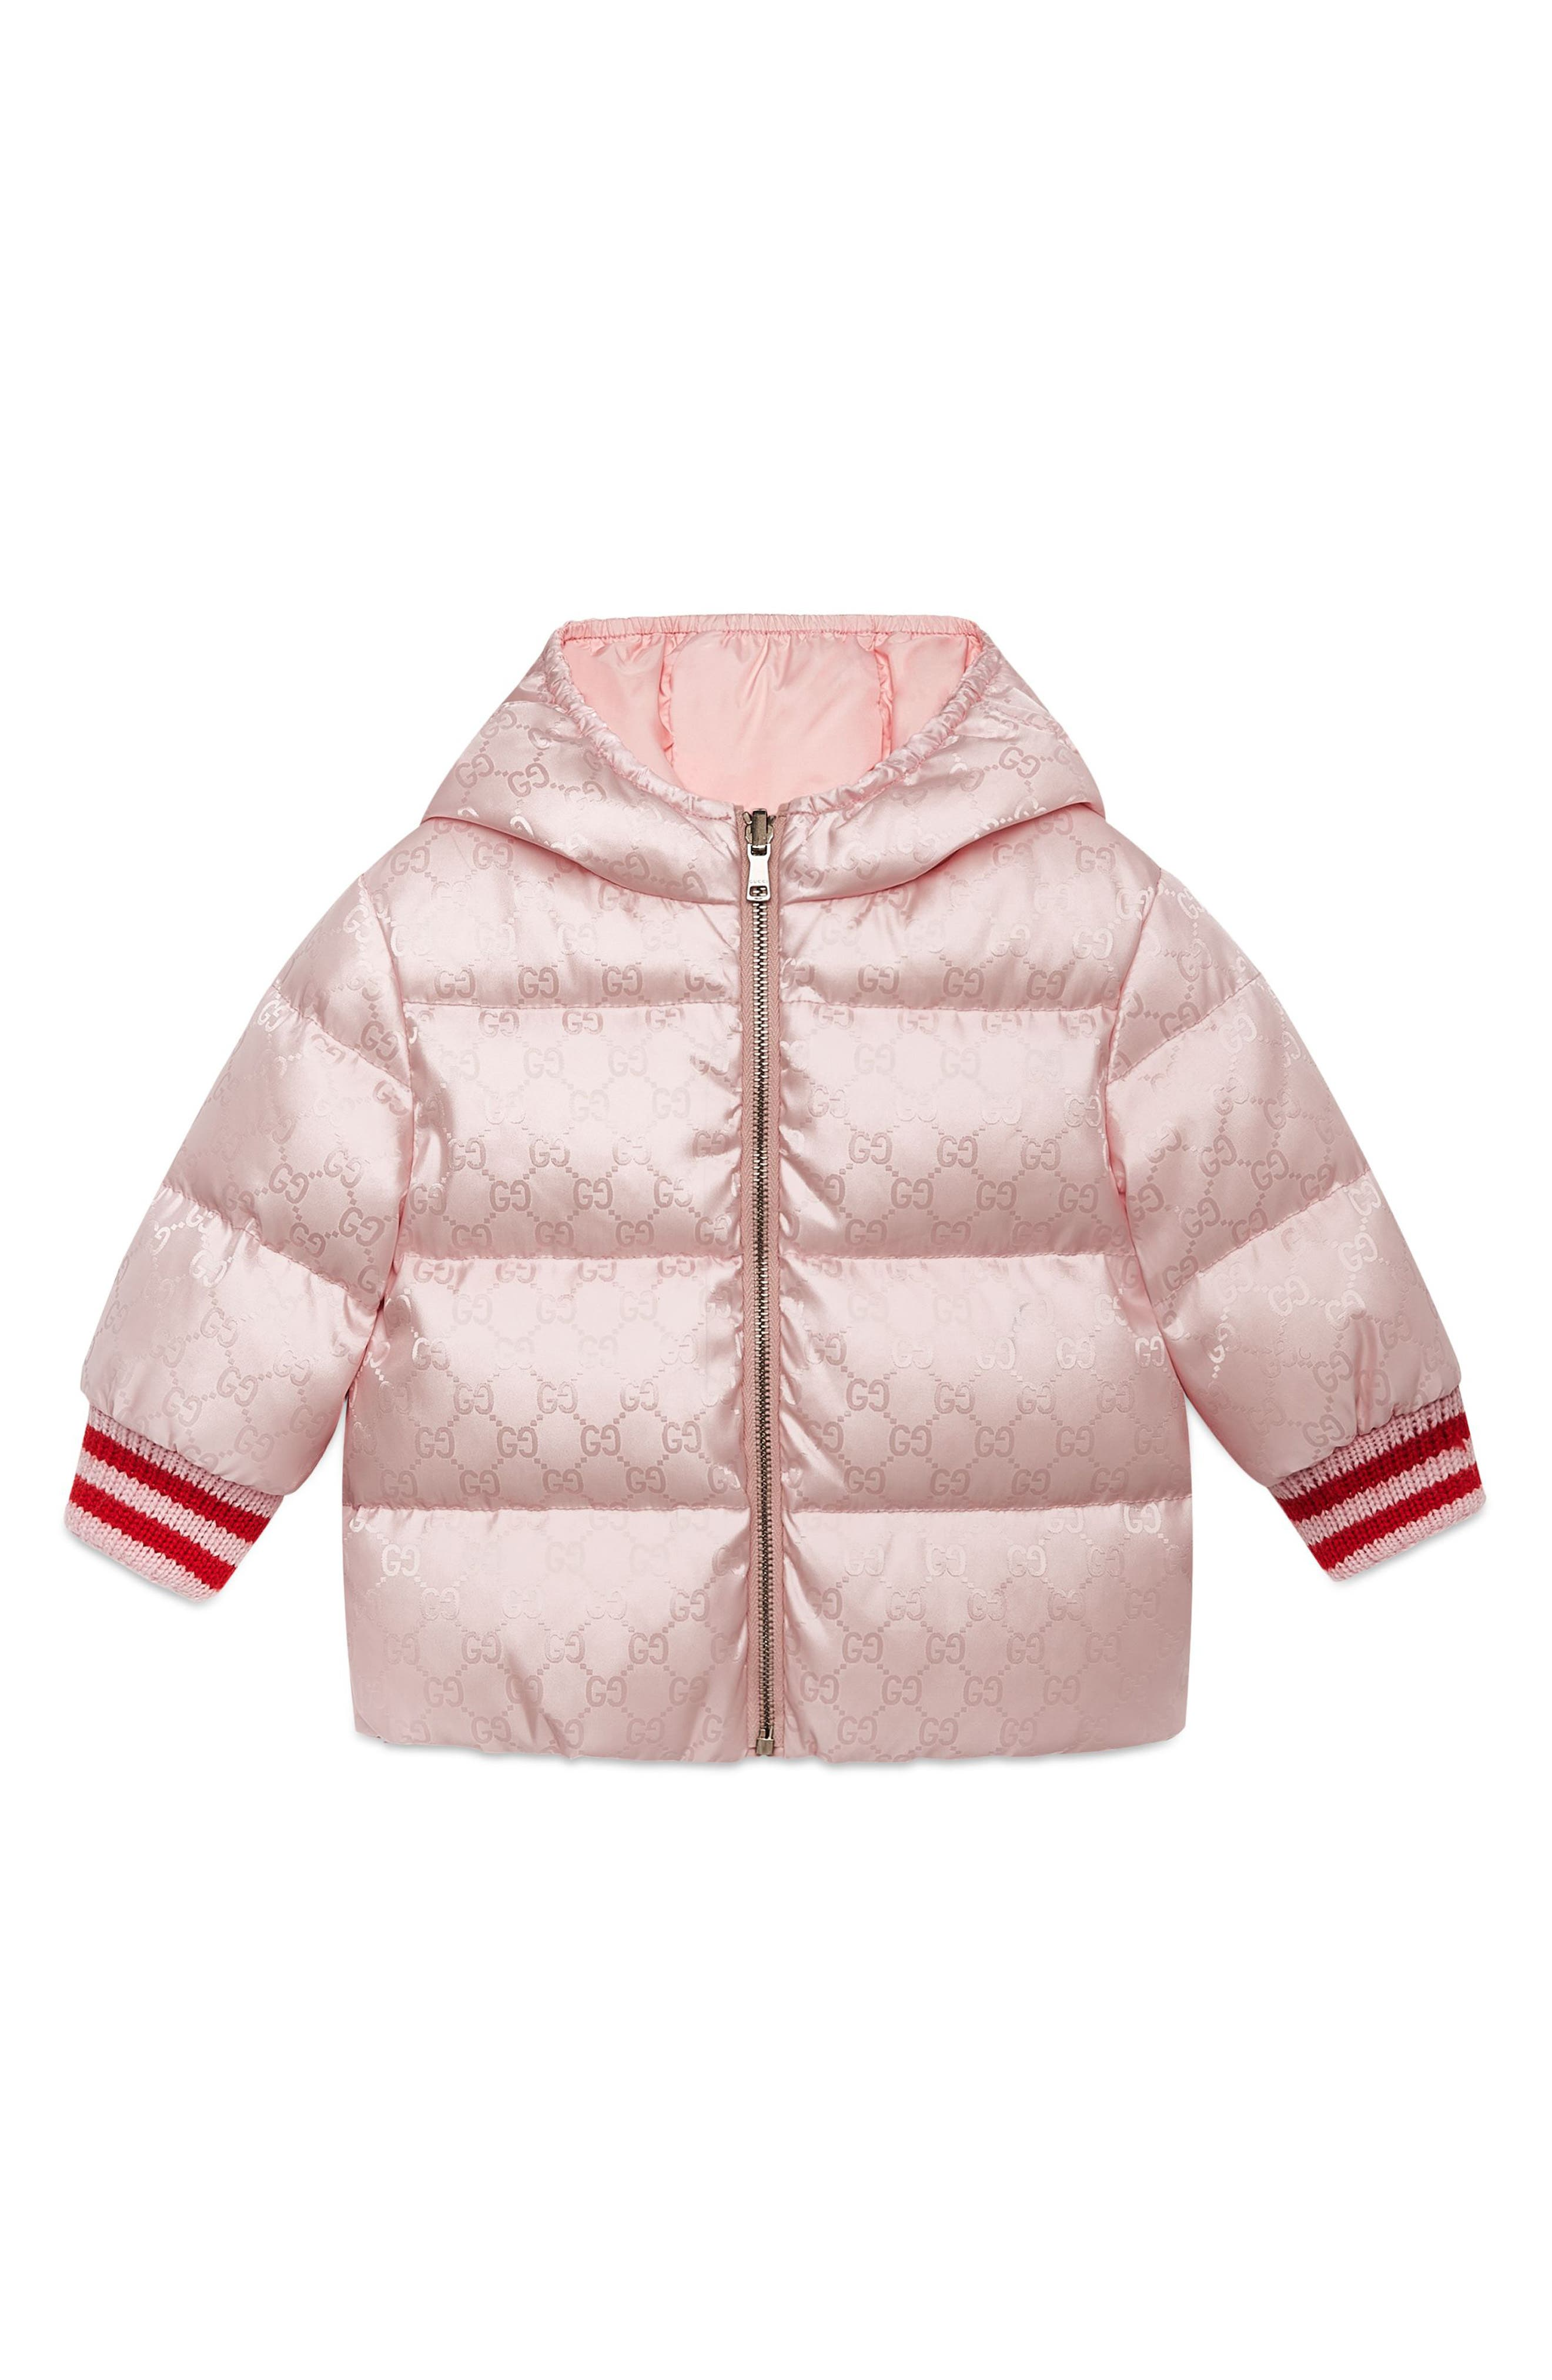 GUCCI Reversible GG Jacquard Water-Resistant Down Jacket